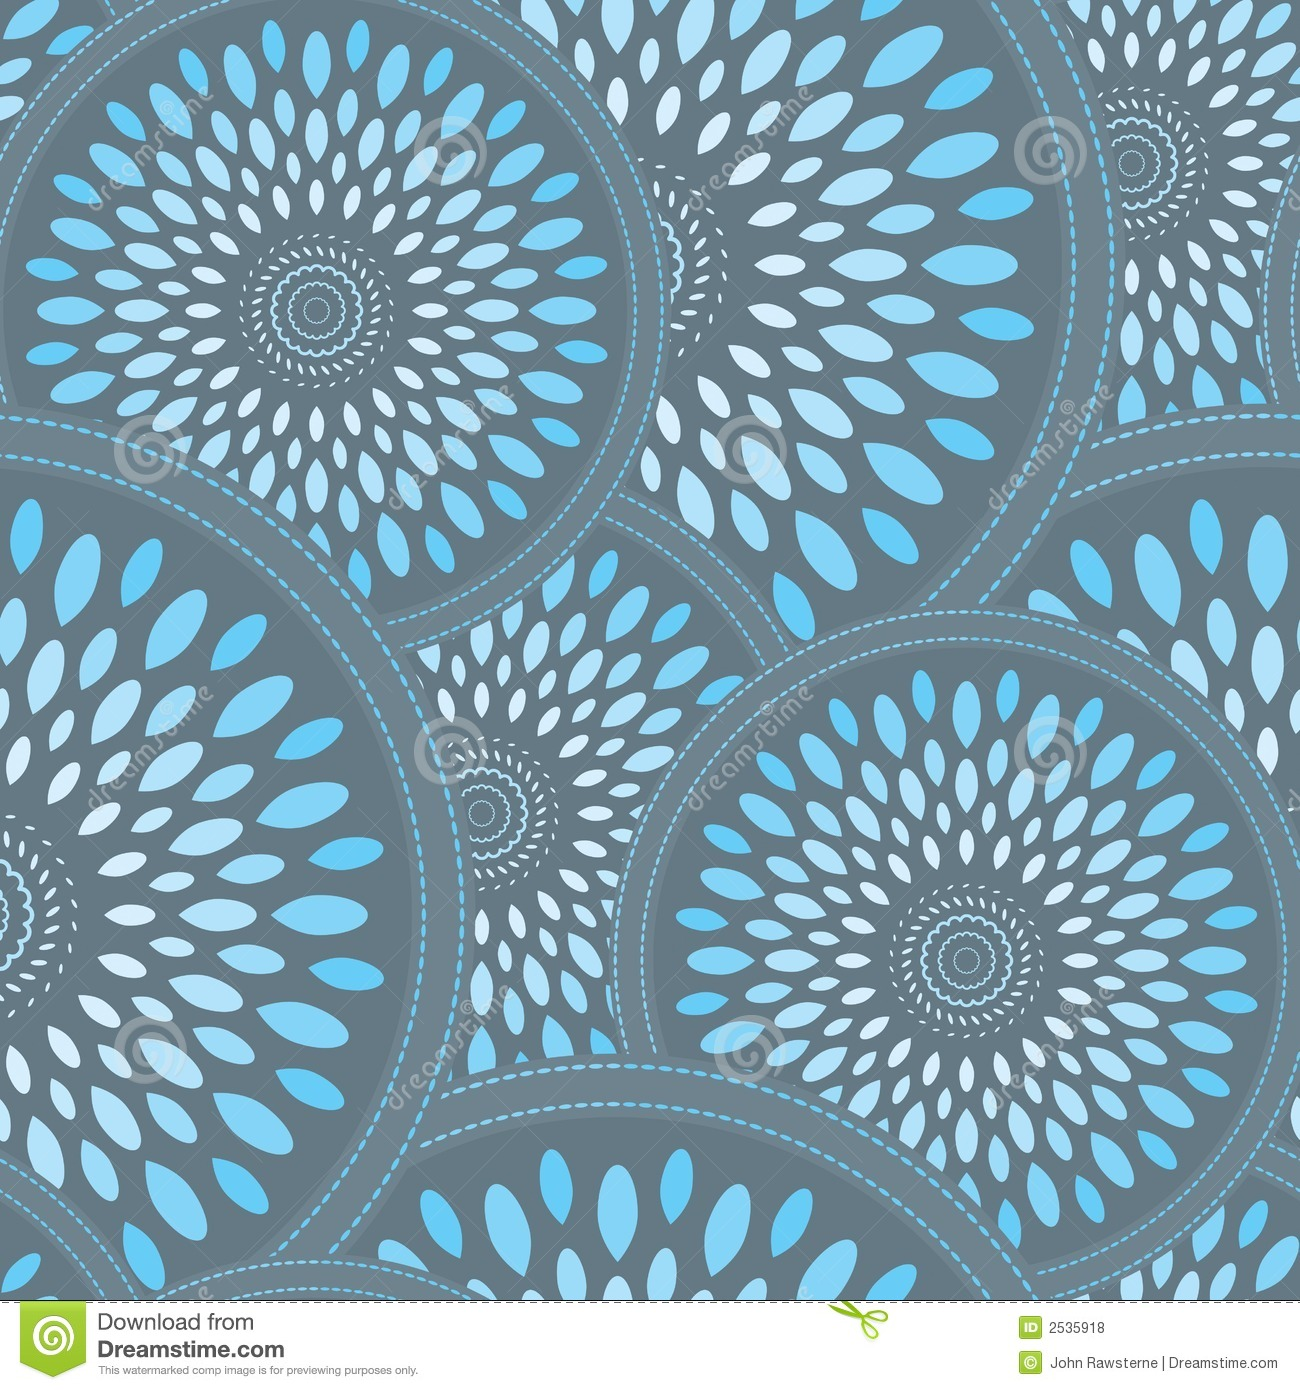 Modern pattern background designs the for Fashionable wallpaper designs